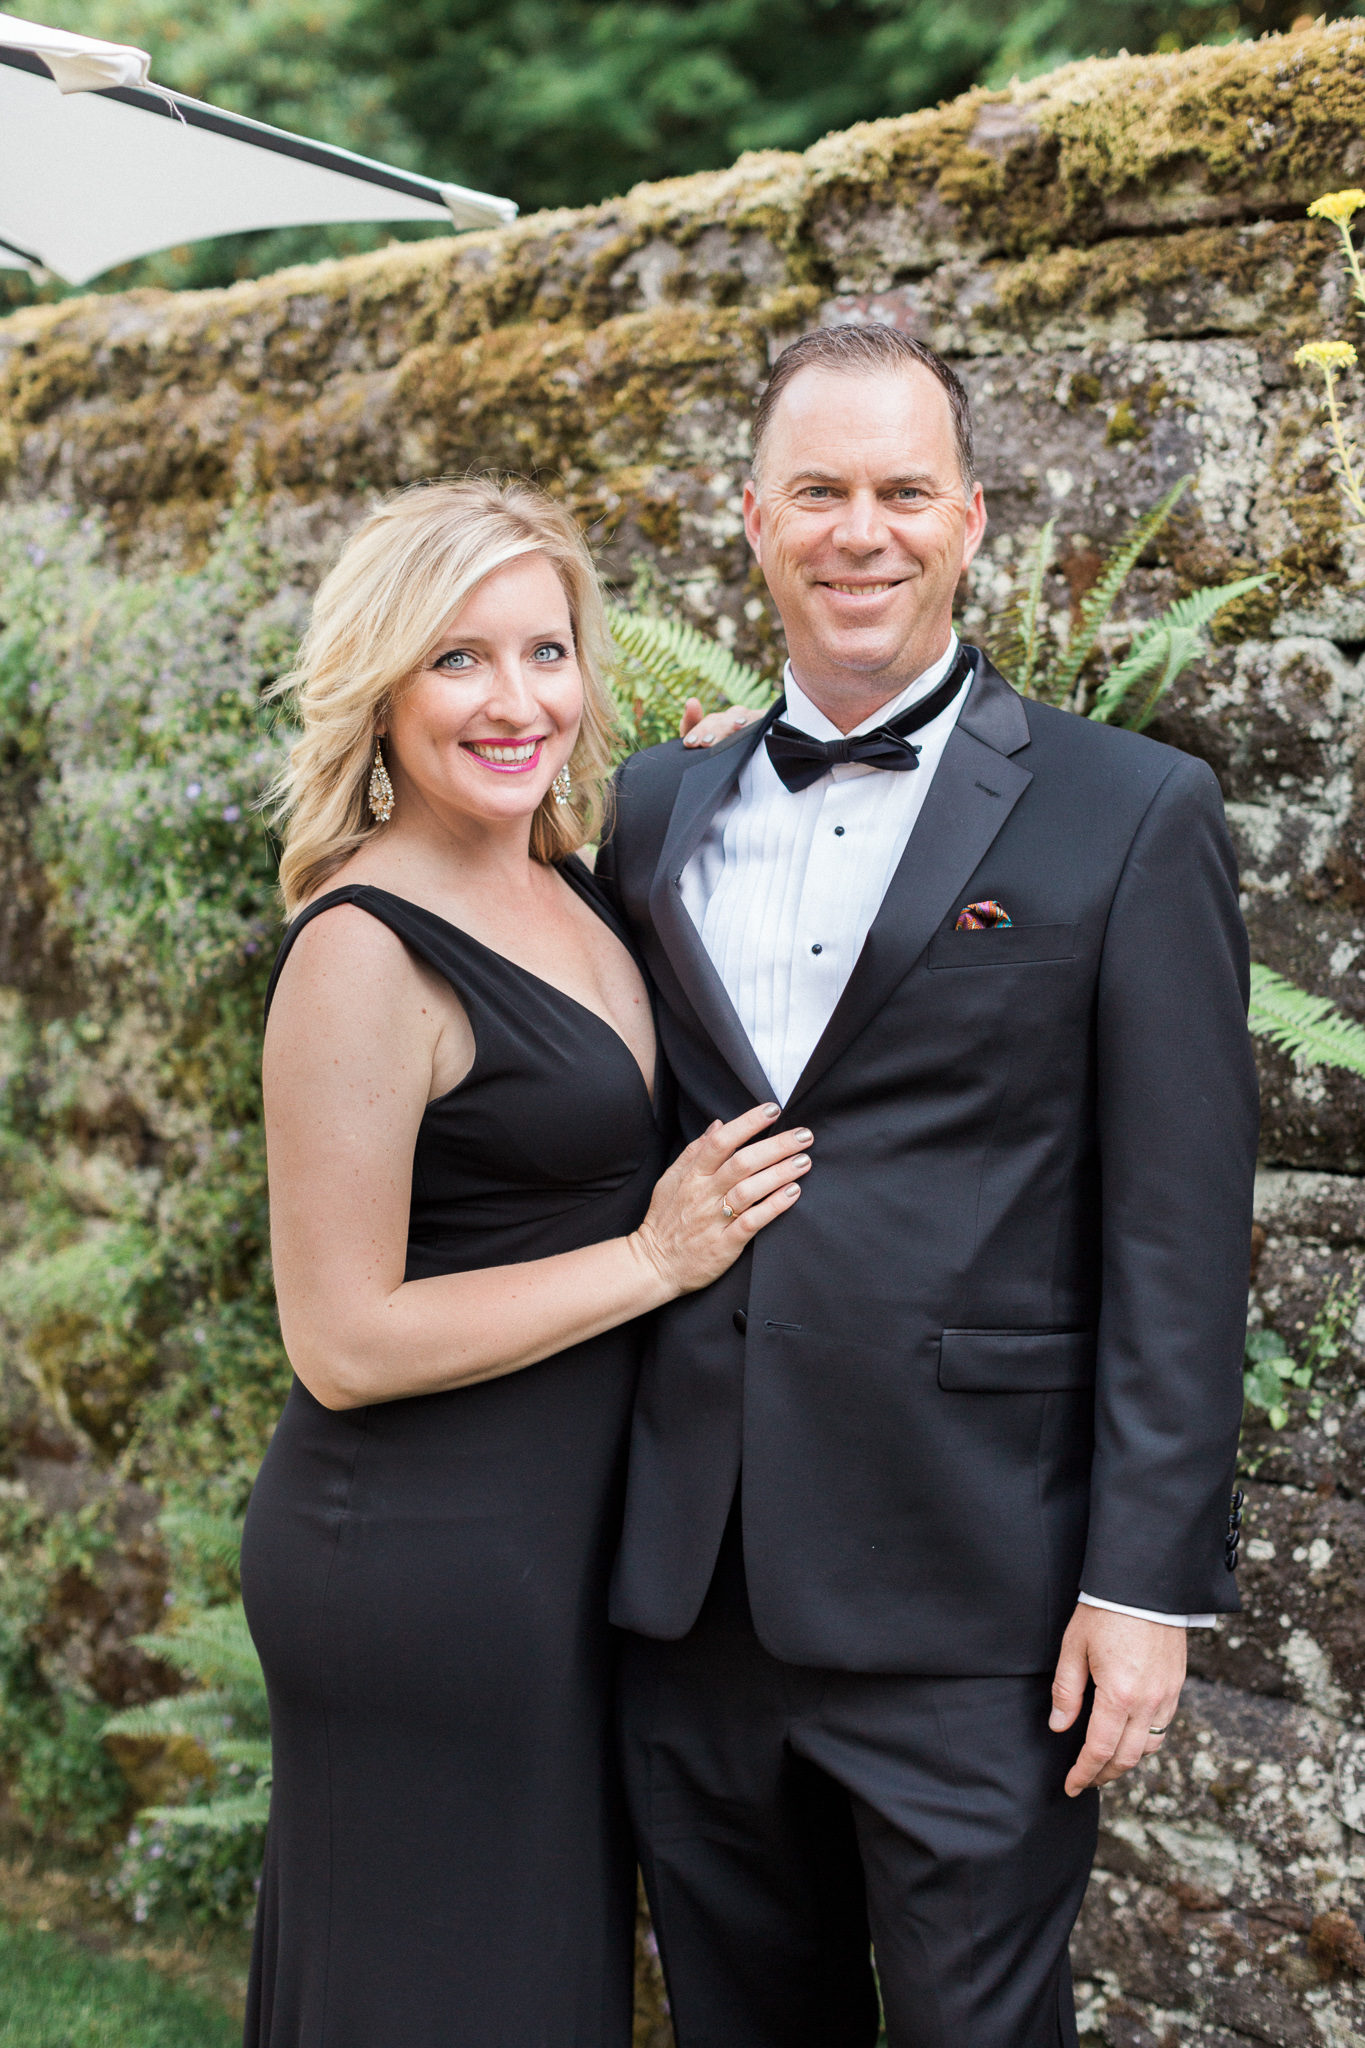 159OutliveCreative_Travel_Photographer_Videographer_Lewis&Clark_Oregon_Elegant_BlackTie_Destination_Wedding.jpg